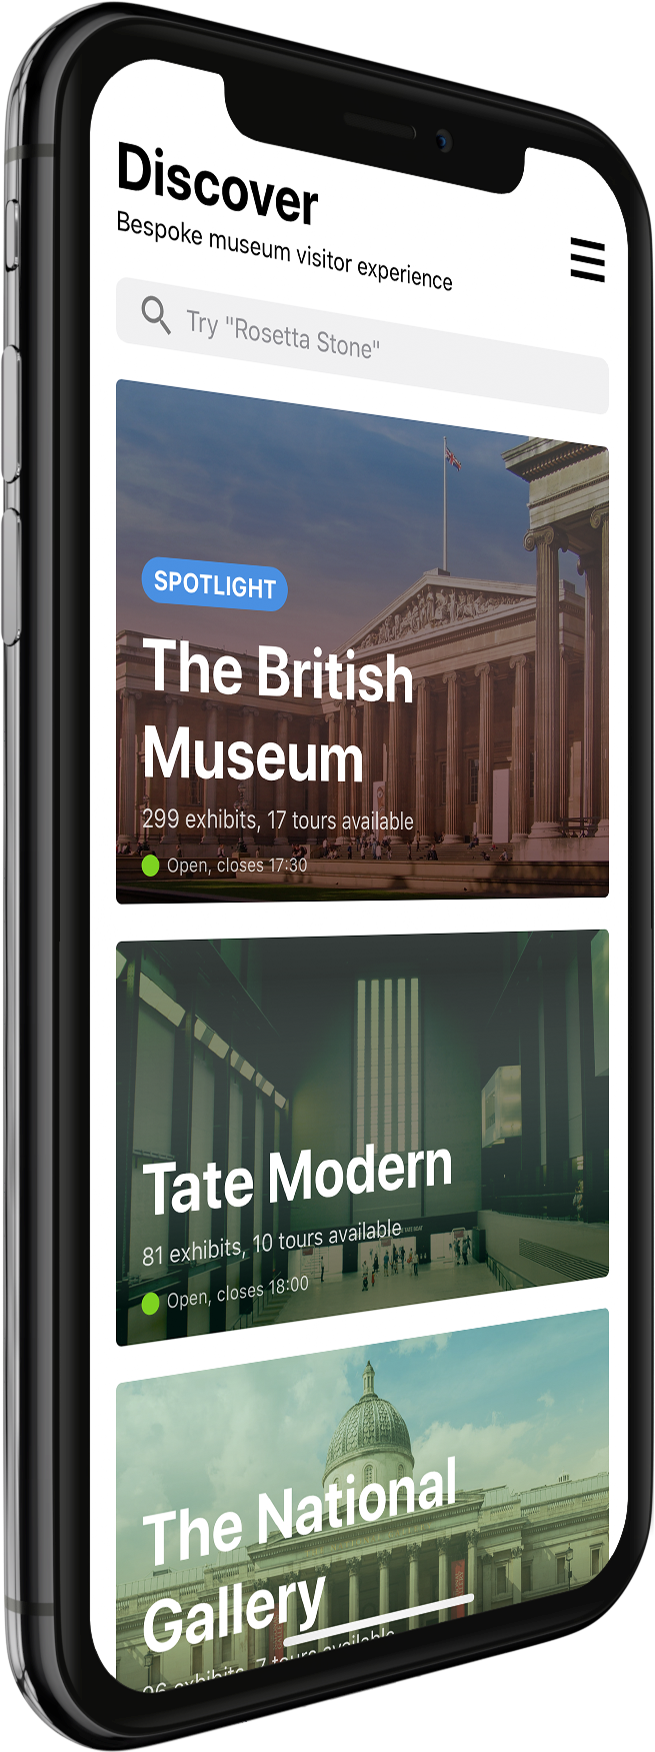 Make the most of your museum visiting experience. Download Aura now for free